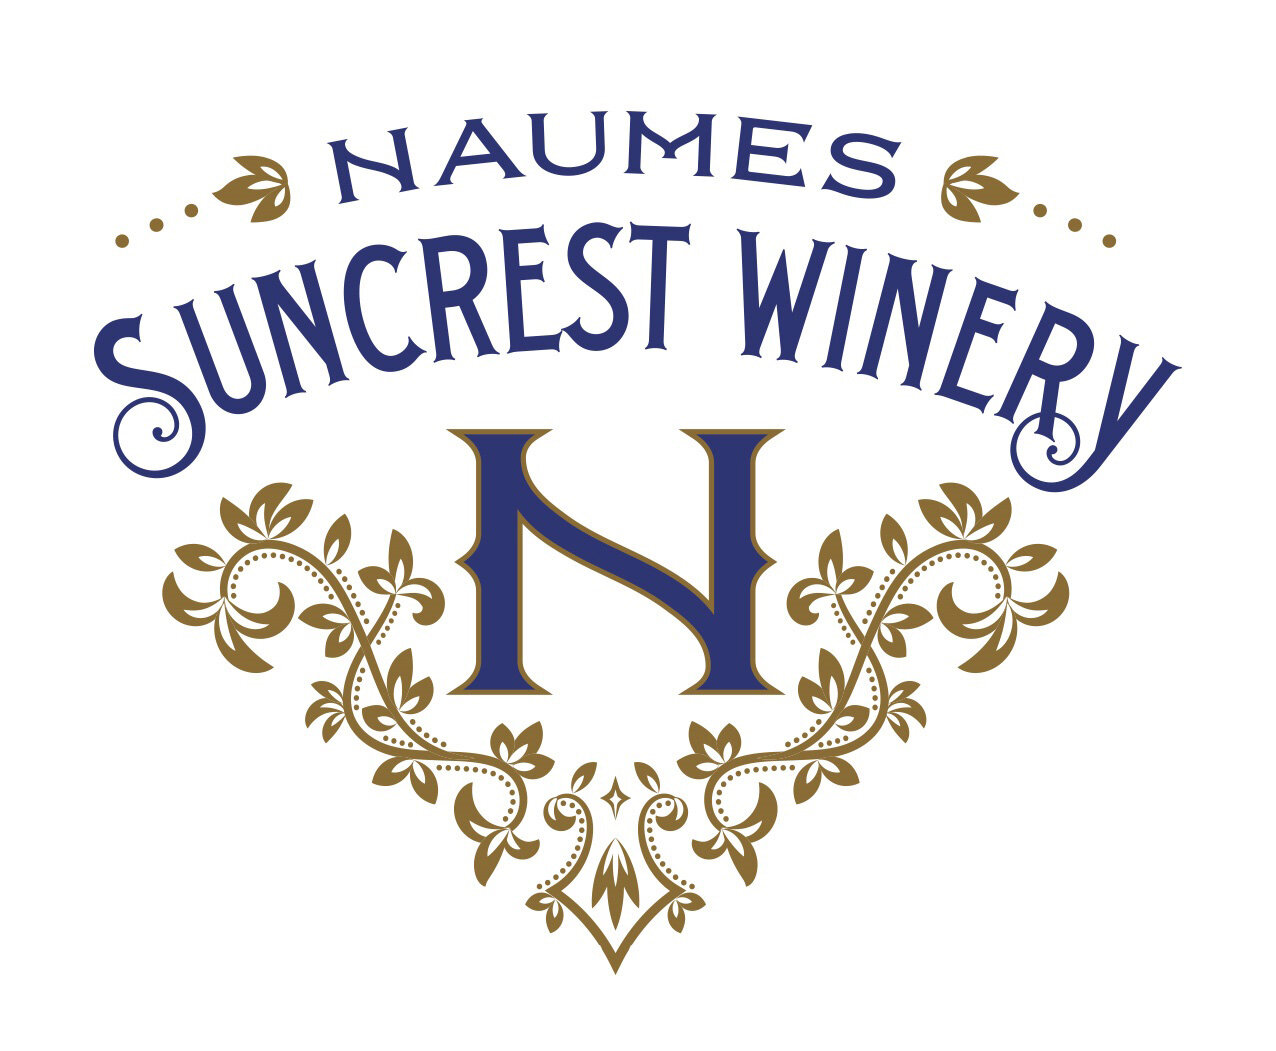 NaumesSuncrestWinery-Logo1-Color.jpg